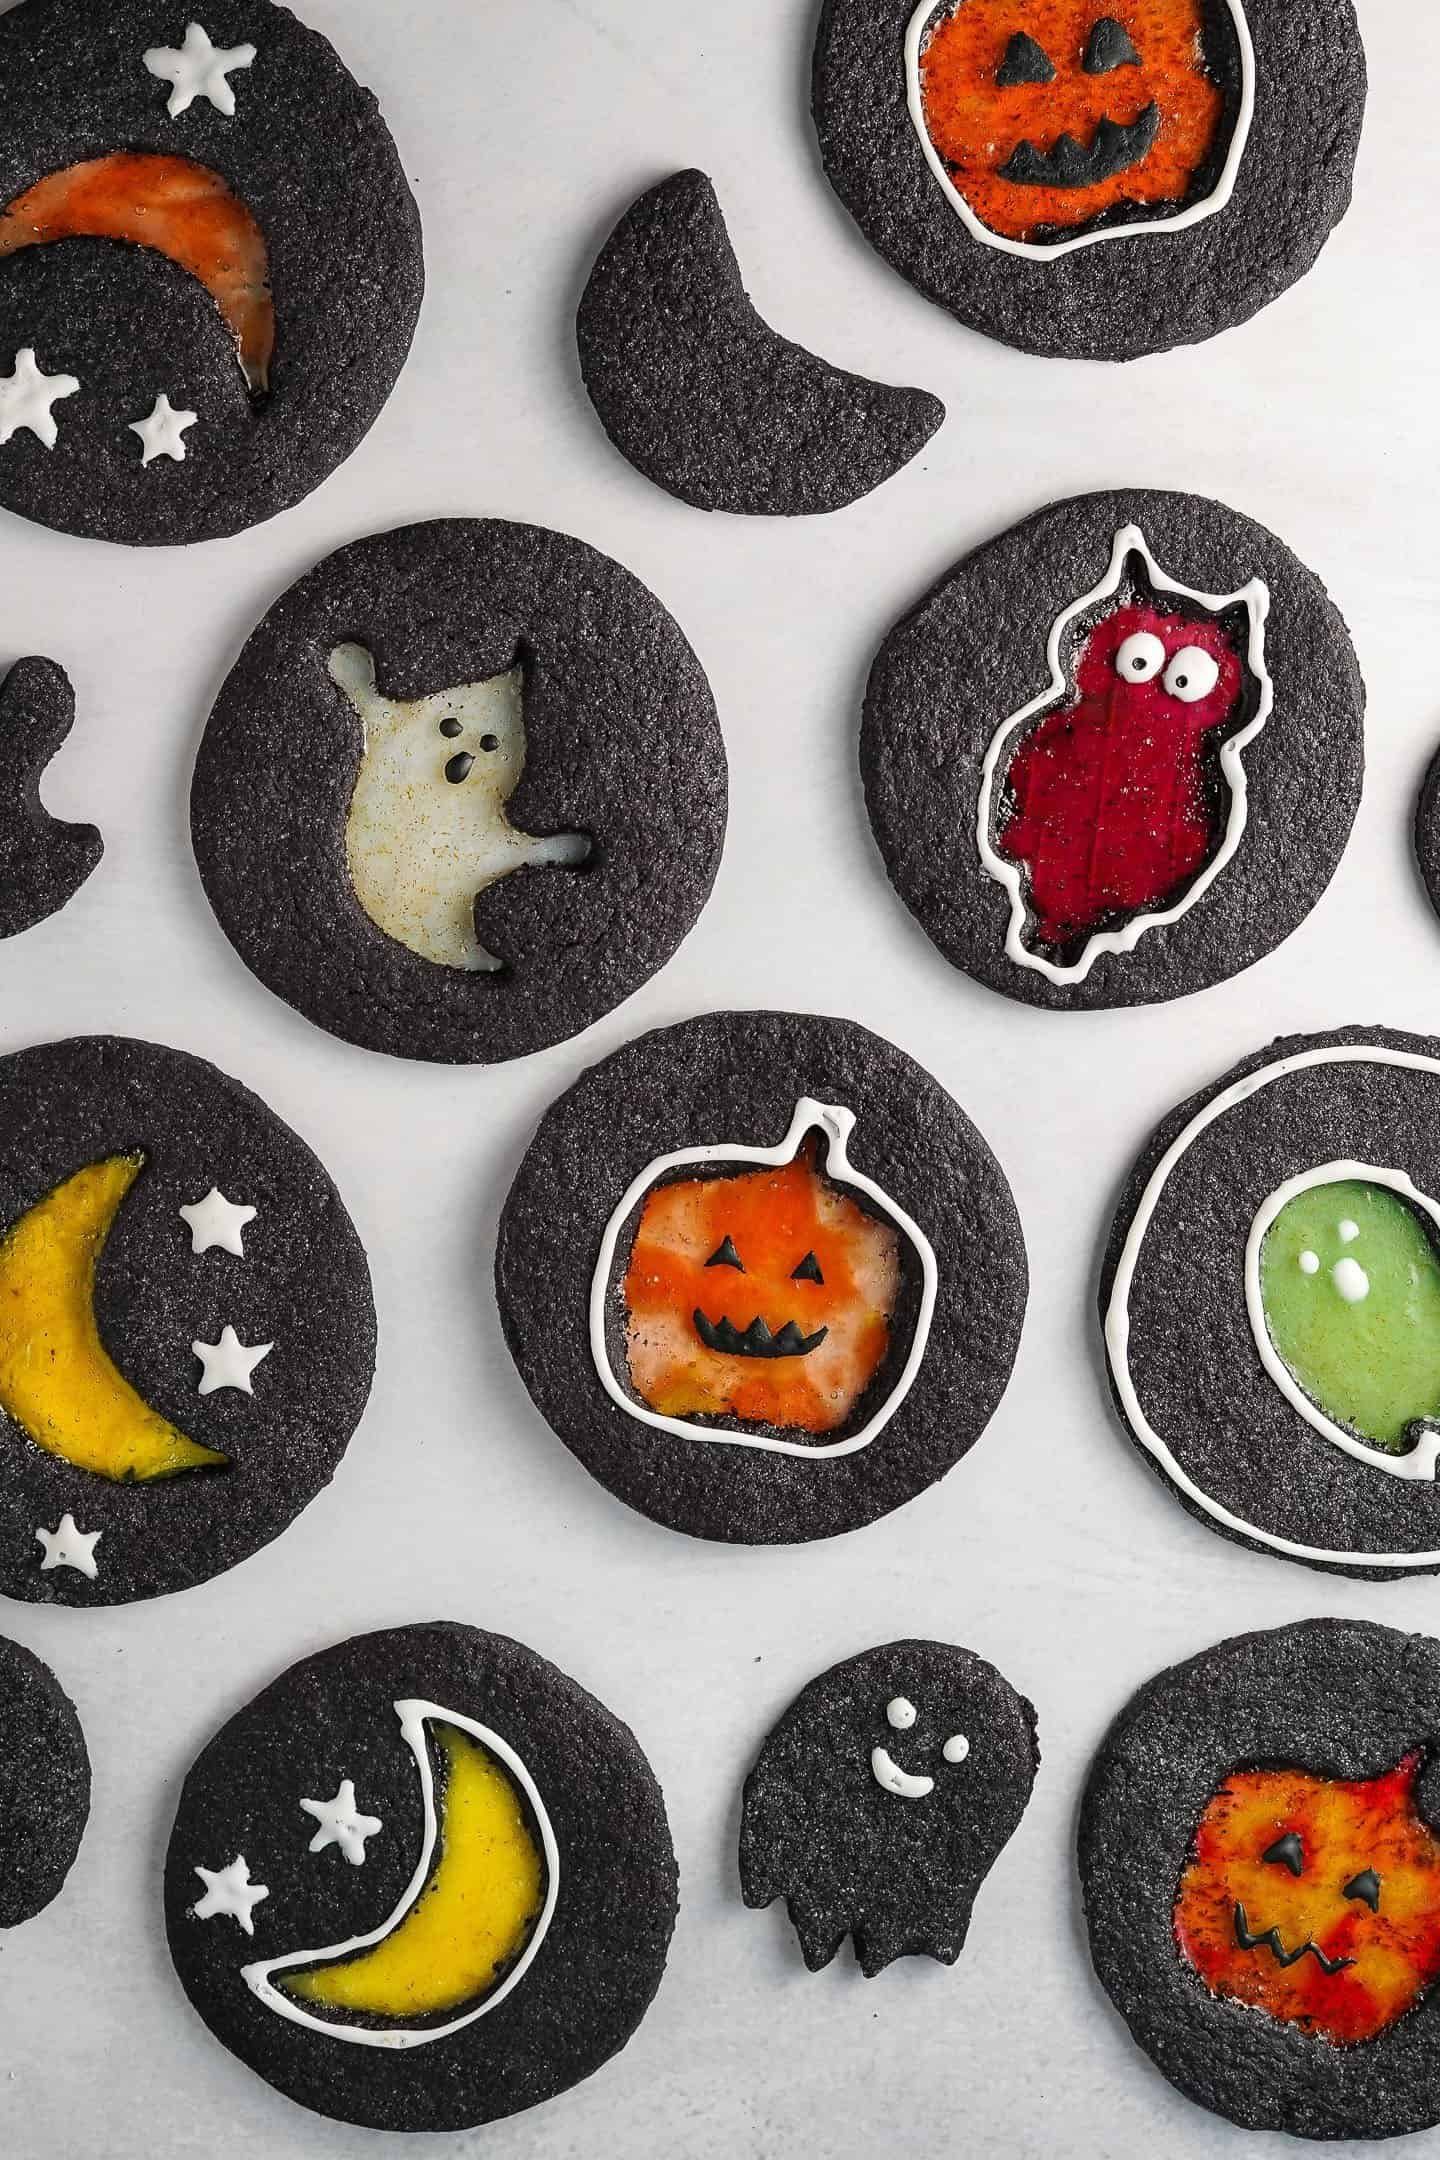 Halloween Windowpane Cookies 2 - Ghoulishly Good! Halloween Party Recipes and Ideas